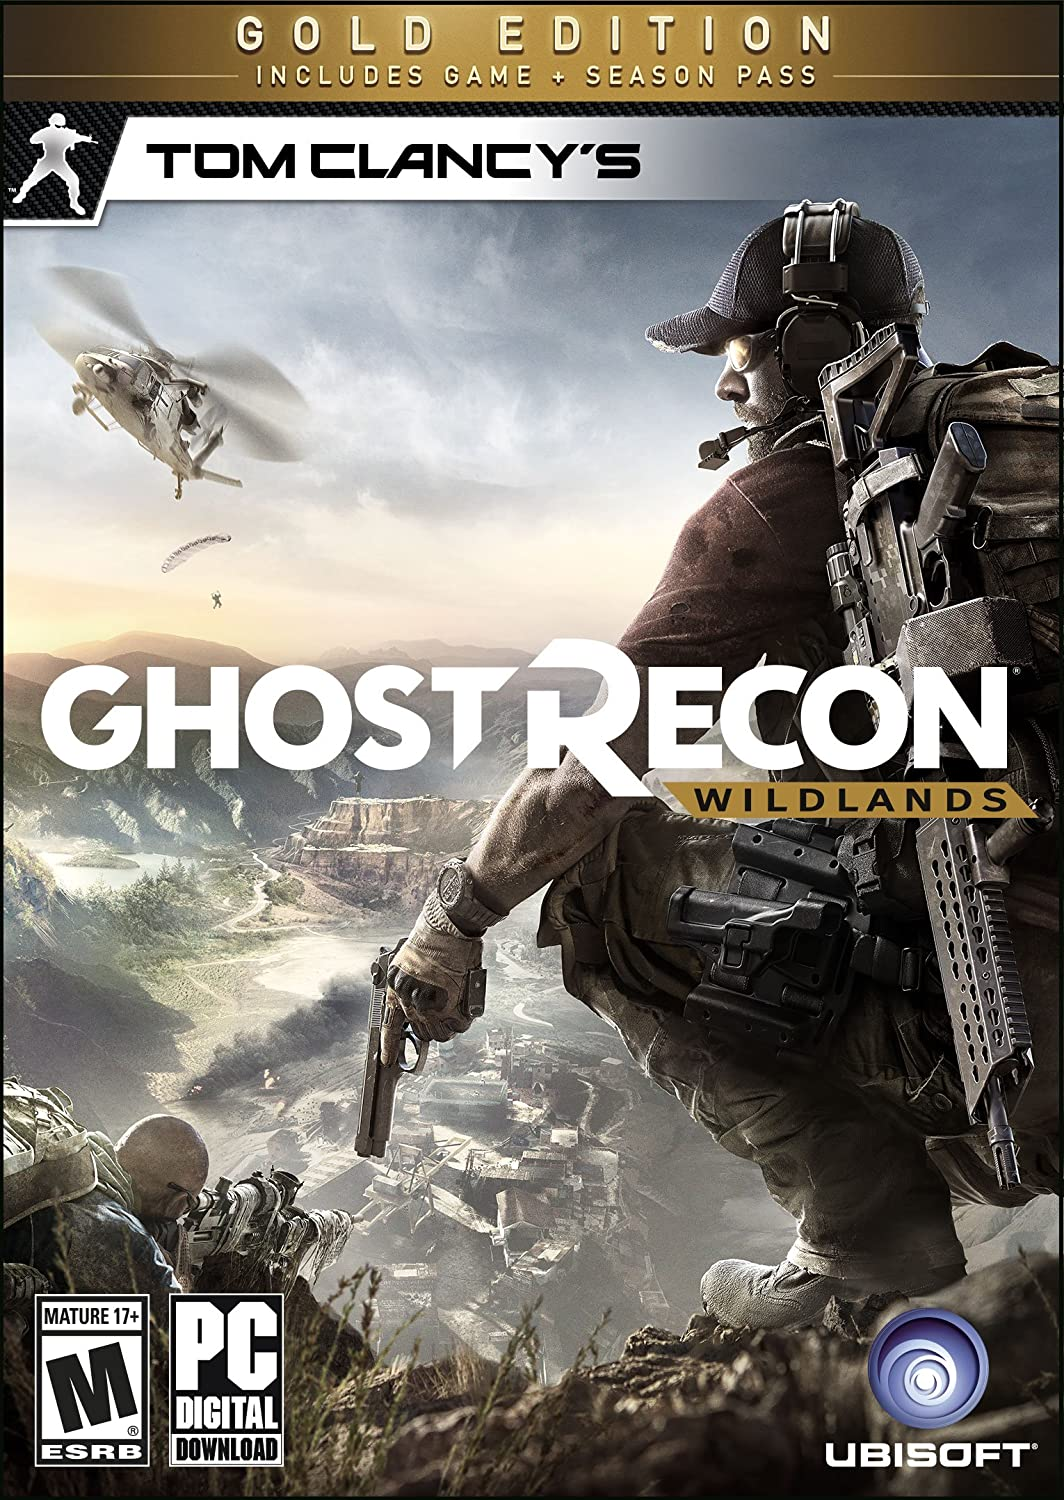 100 home design gold for pc proshow gold create fast and home design gold for pc amazon com tom clancy s ghost recon wildlands gold edition